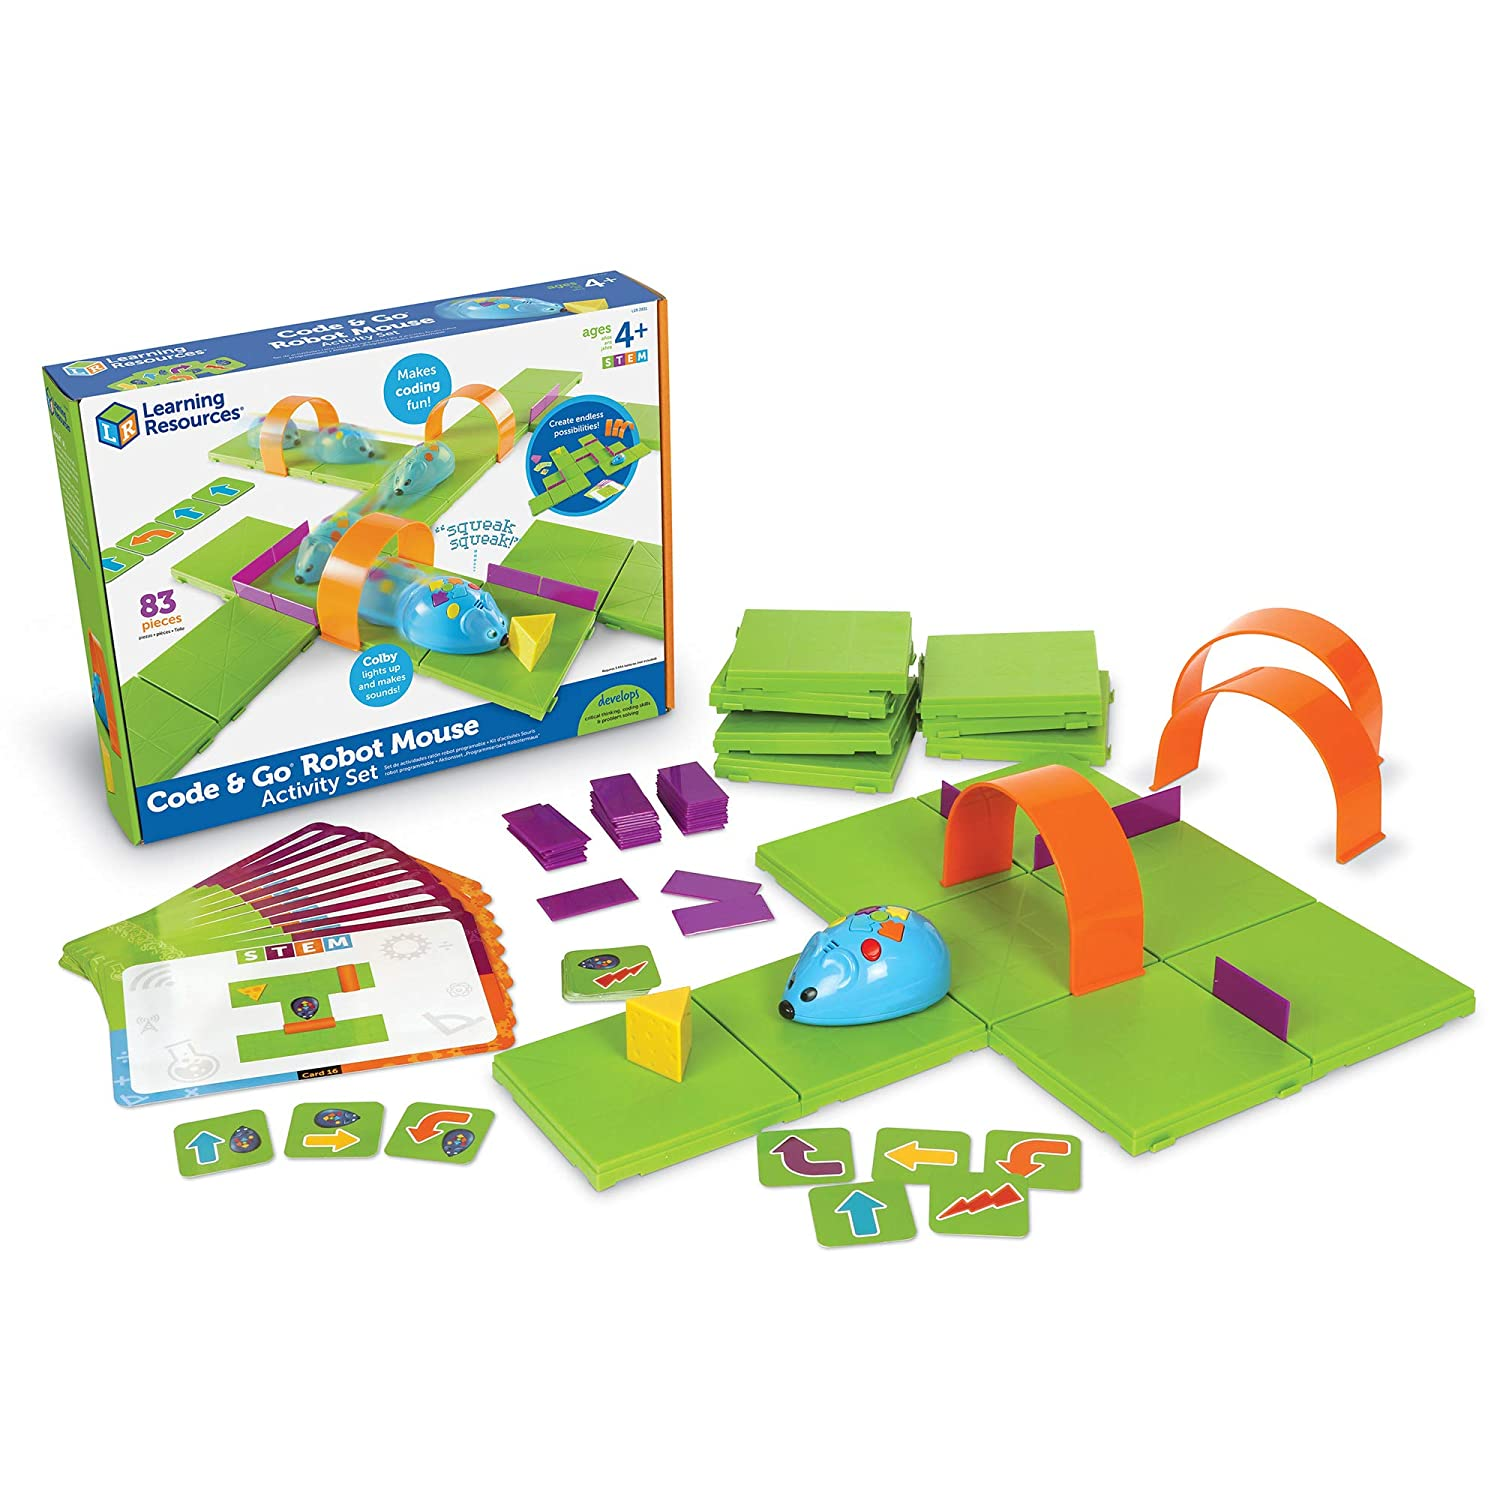 bdc24f41660 Learning Resources-XLRLER2831, Color (LER2831): Amazon.es: Juguetes y juegos